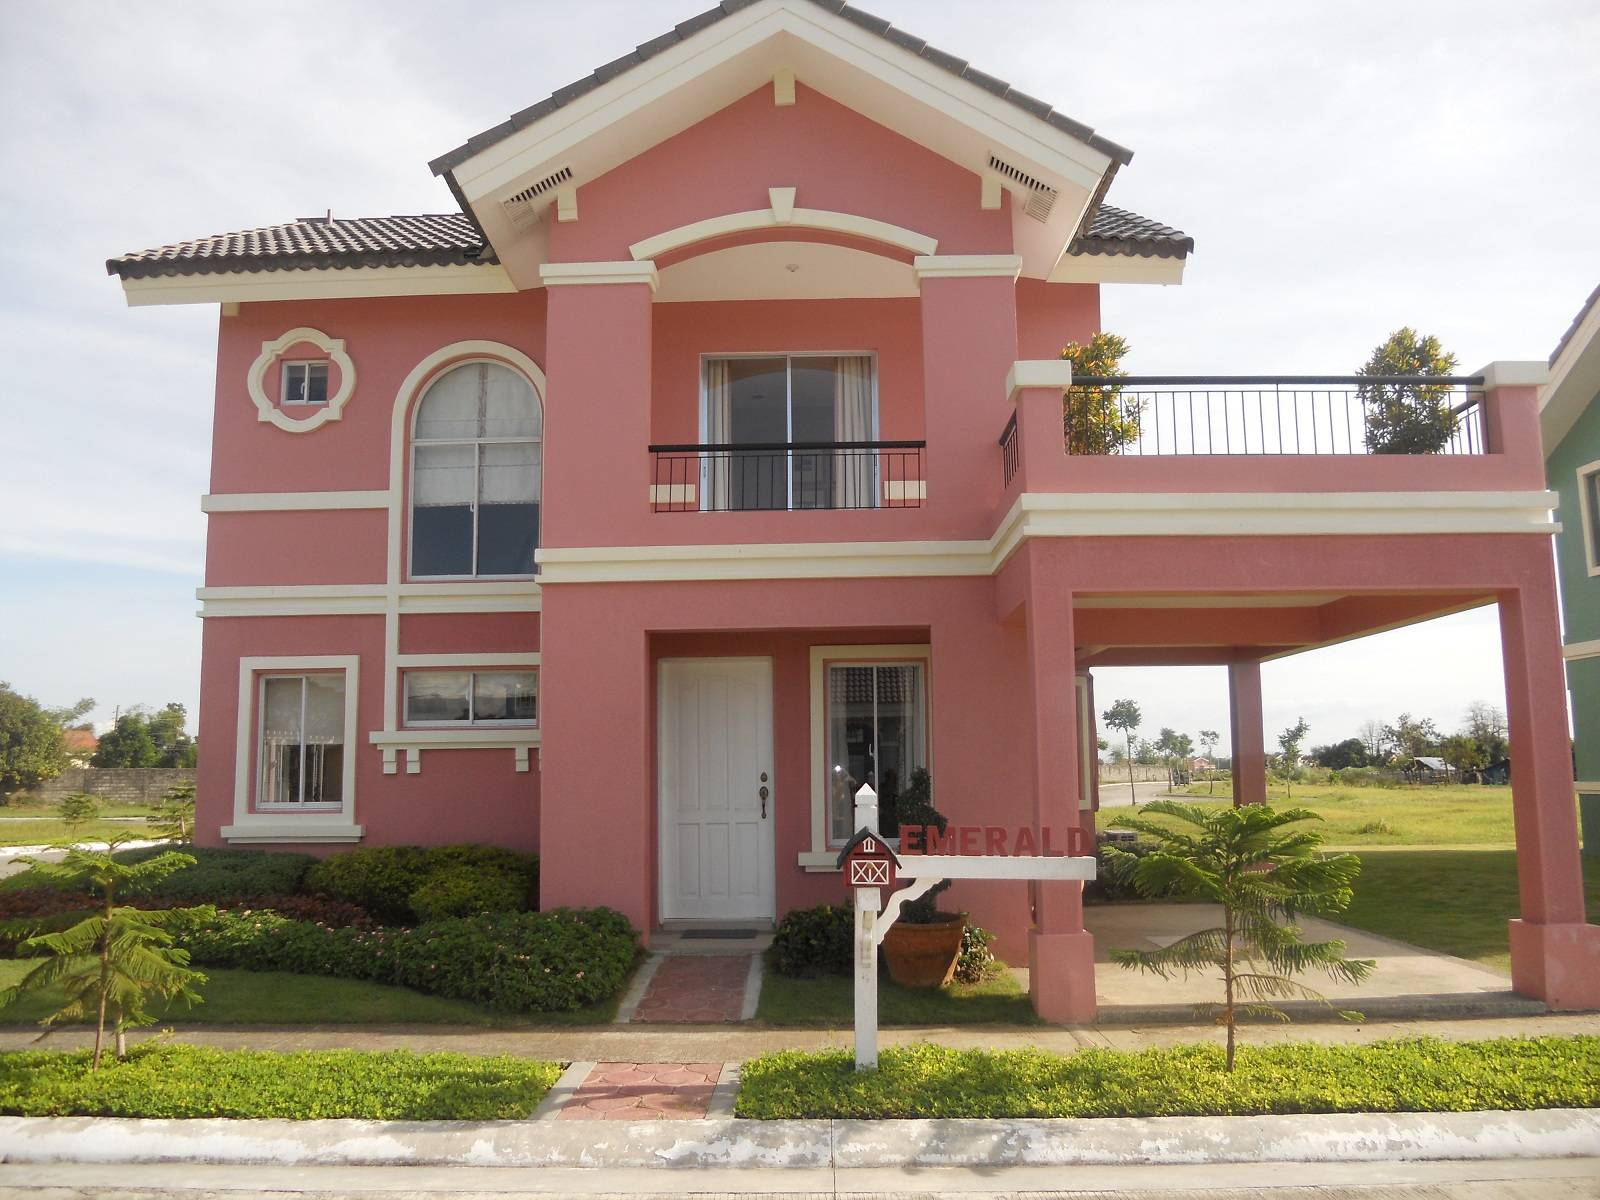 Homes Pavia Oton San Miguel Iloilo Crossandra Emerald Model House